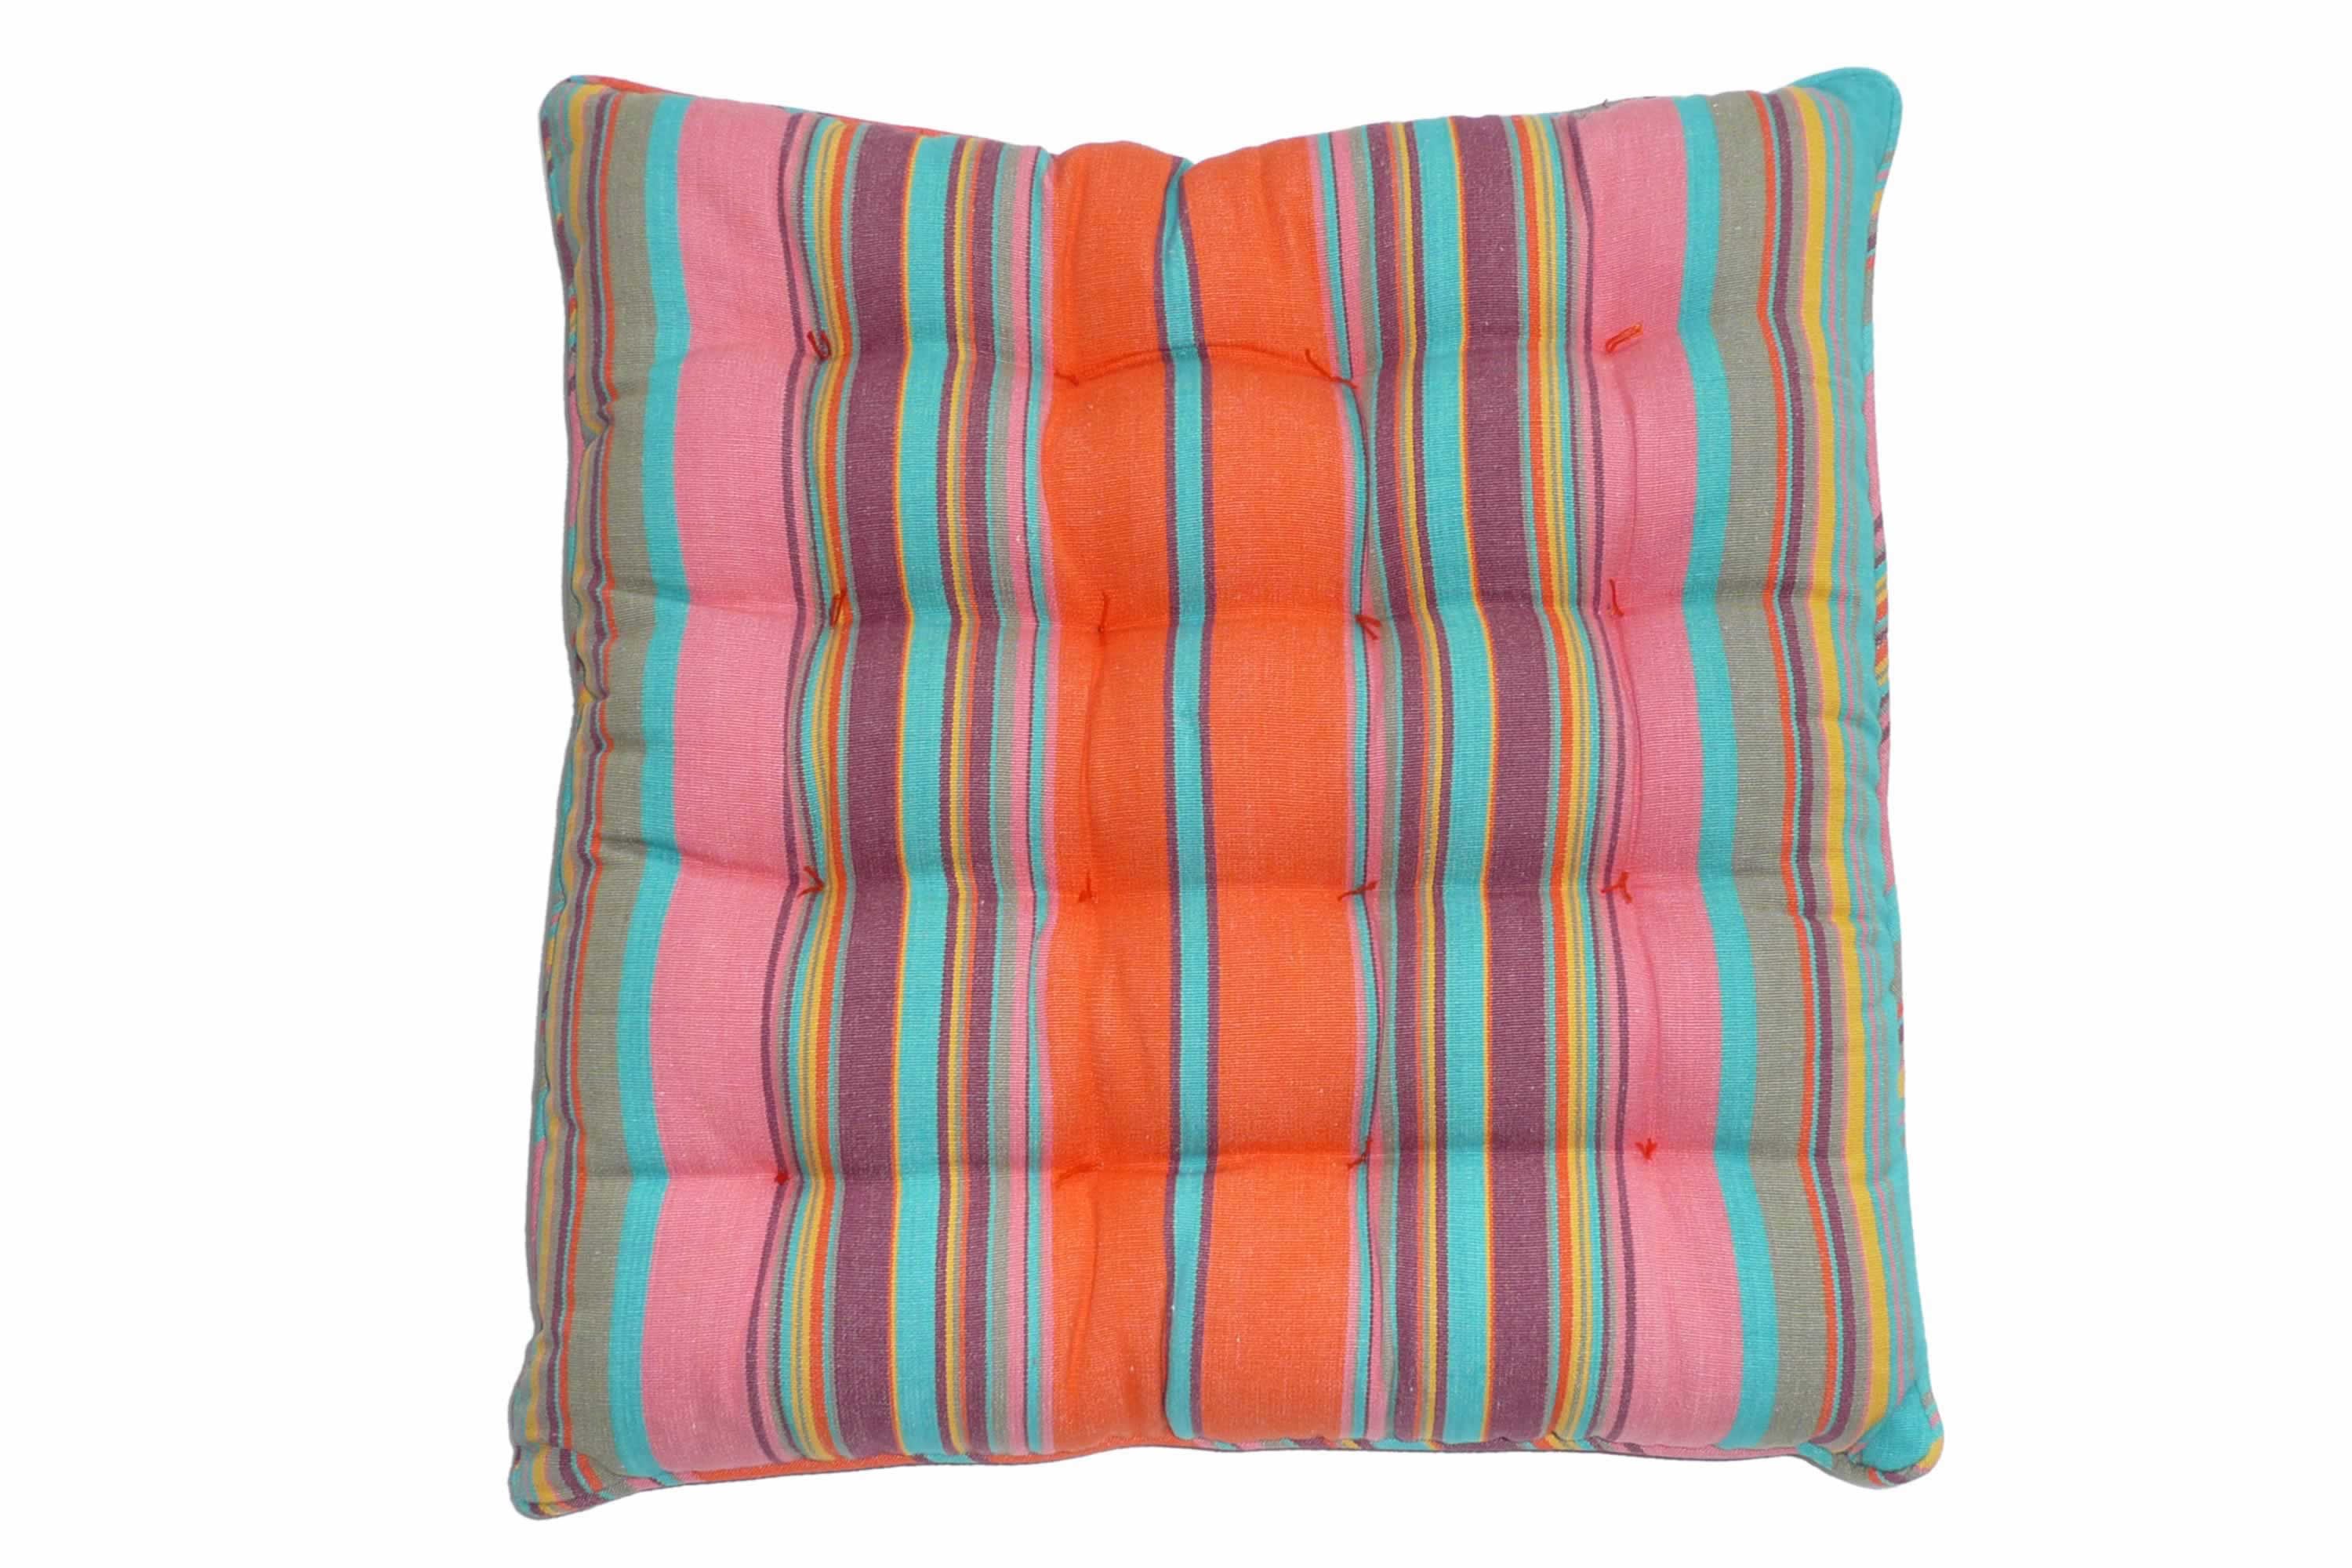 Striped Seat Pads with Piping Coral, Turquoise Blue